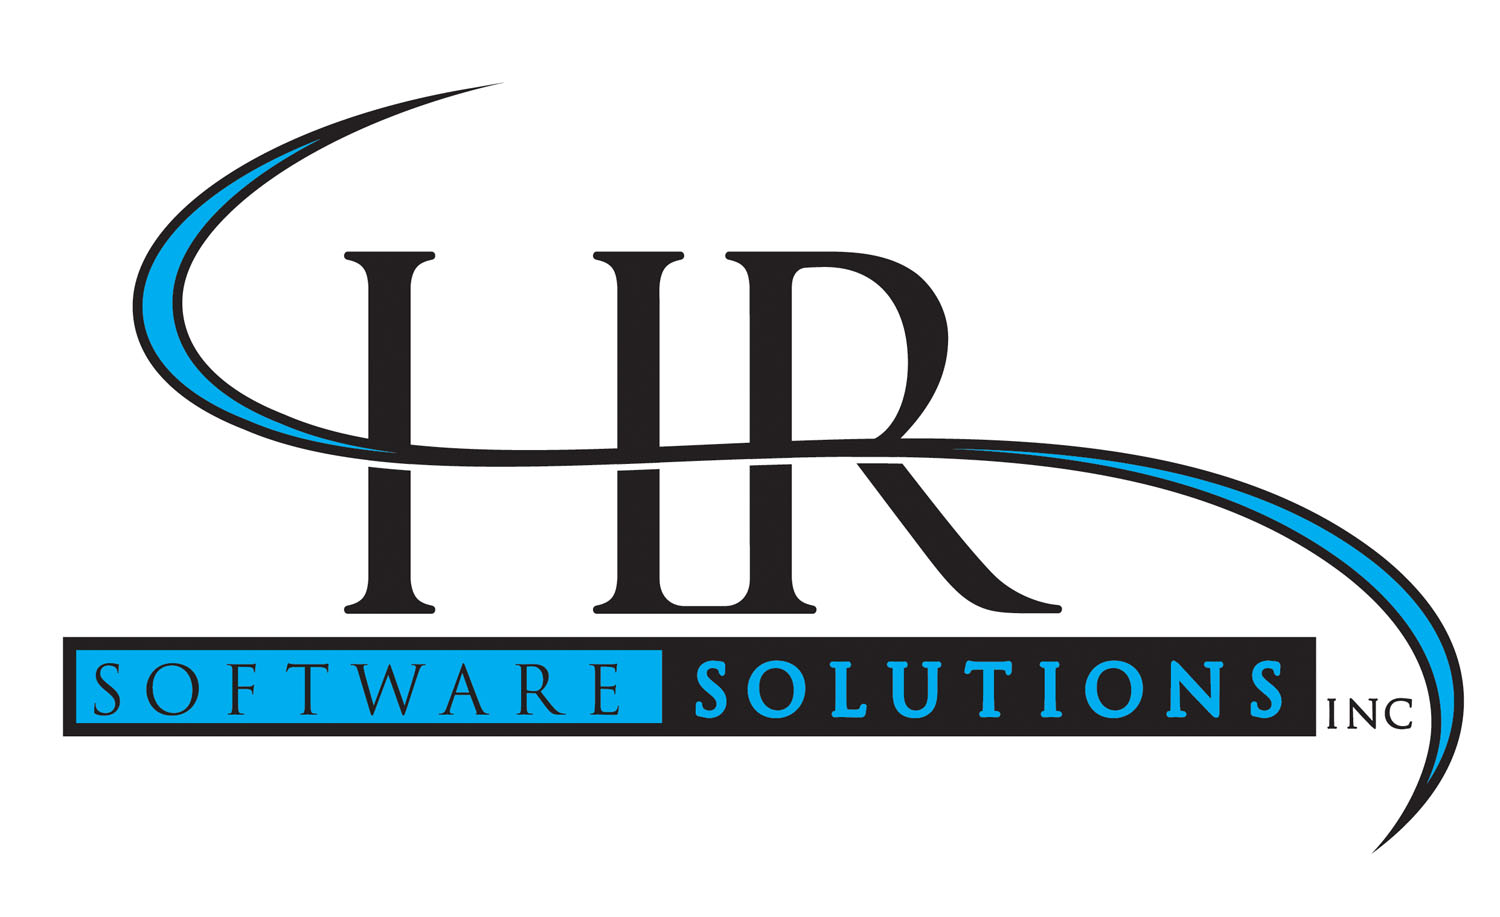 HR Software Solutions